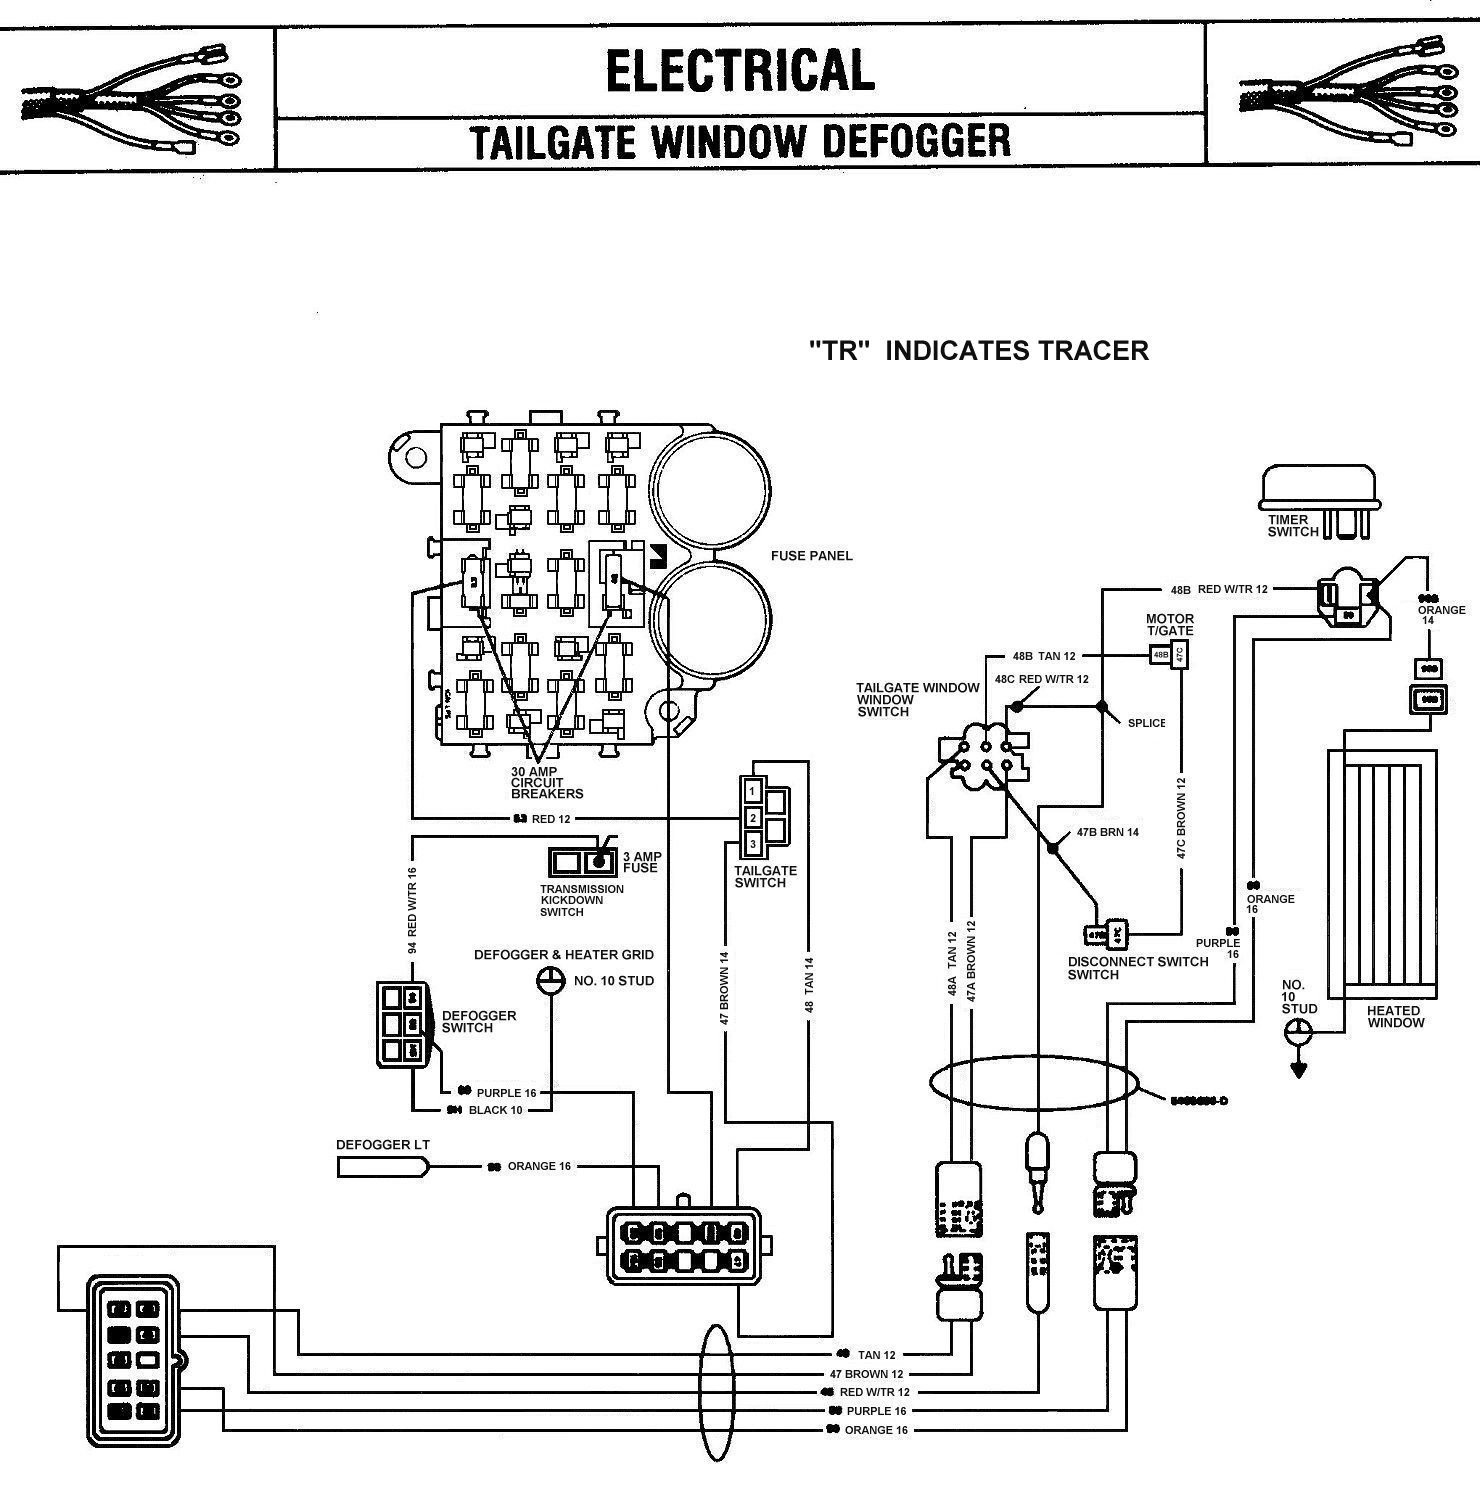 84 85_RearWindowDefroster 1979 jeep grand wagoneer wiring harness 1979 wiring diagrams Basic Electrical Wiring Diagrams at soozxer.org